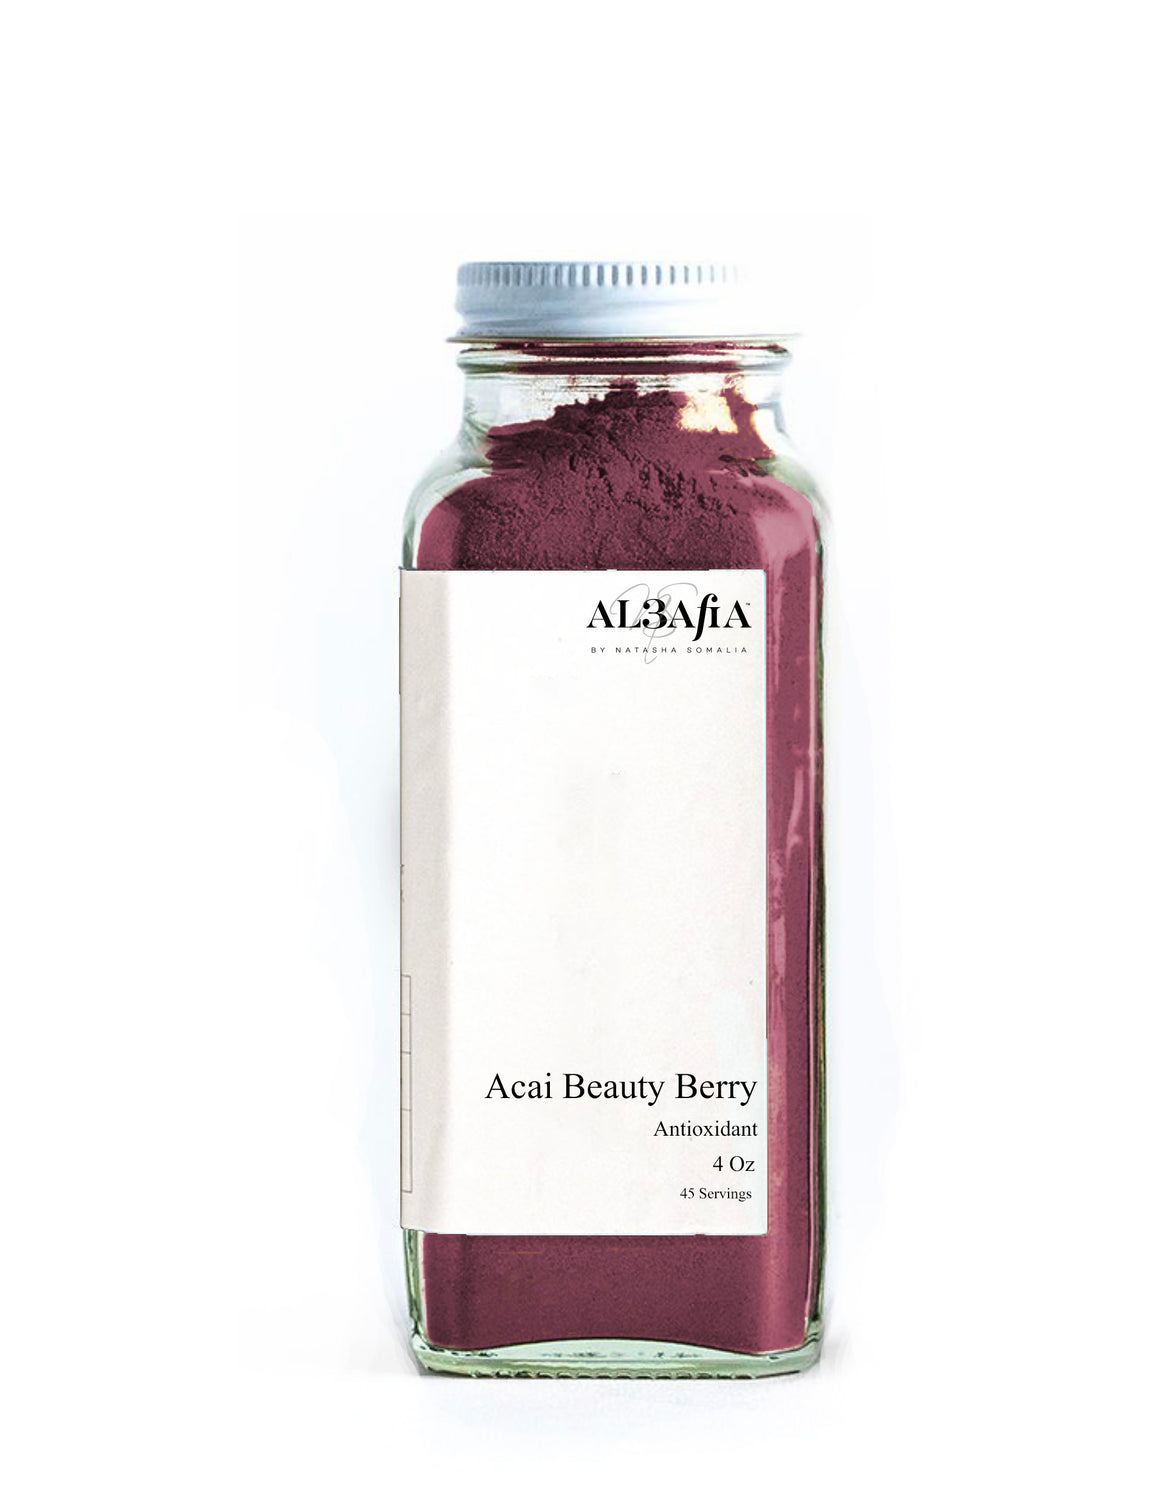 Açaí Beauty Berry Antioxidant